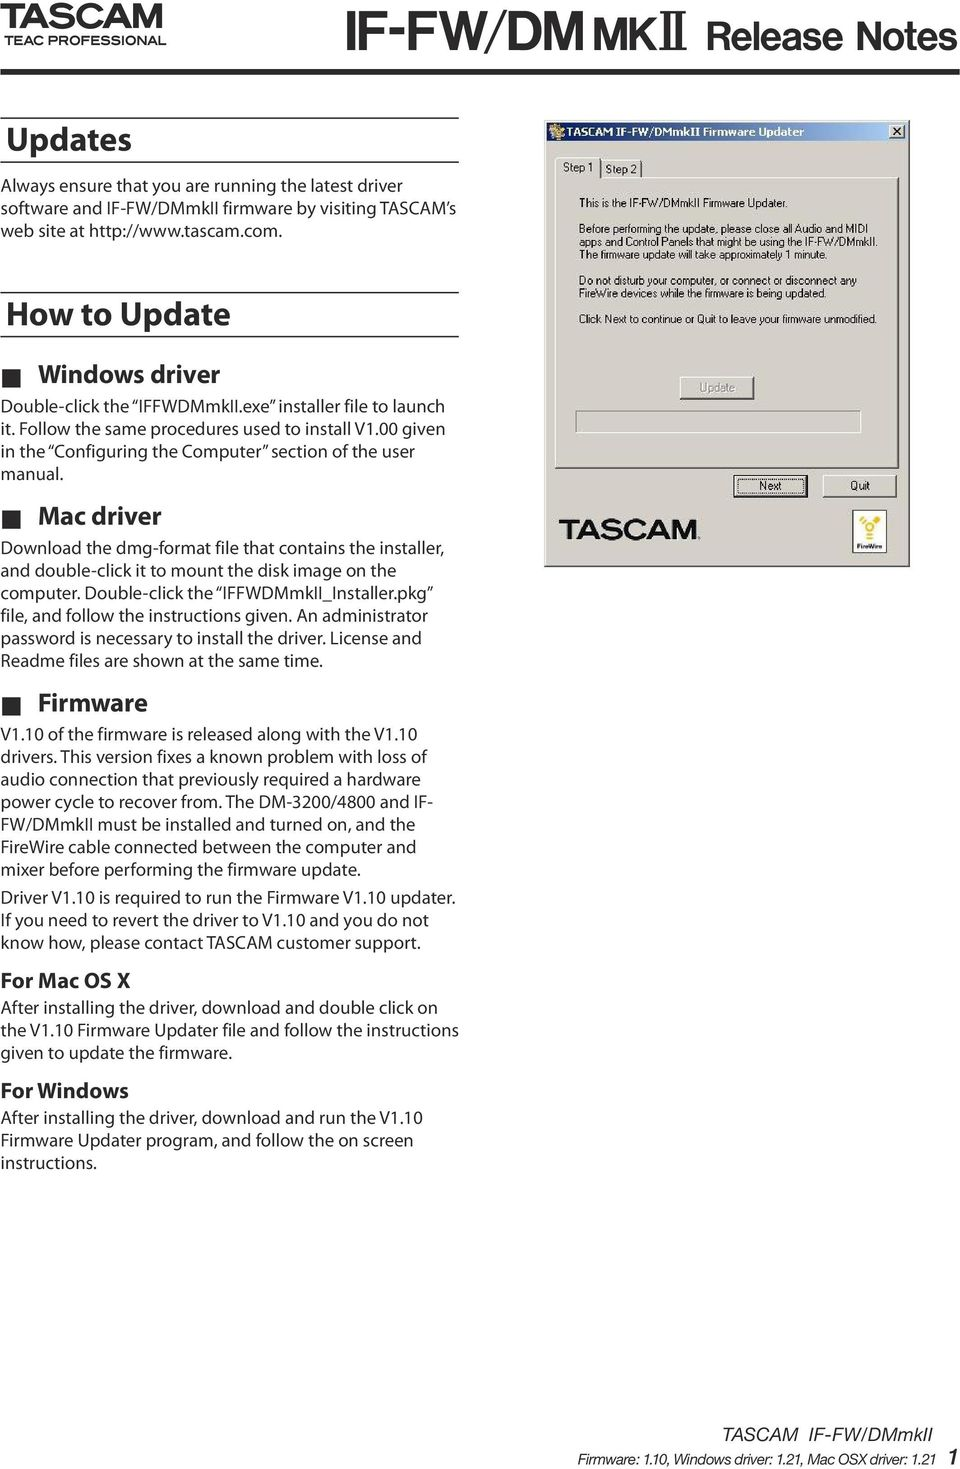 00 given in the Configuring the Computer section of the user manual. Mac driver Download the dmg-format file that contains the installer, and double-click it to mount the disk image on the computer.